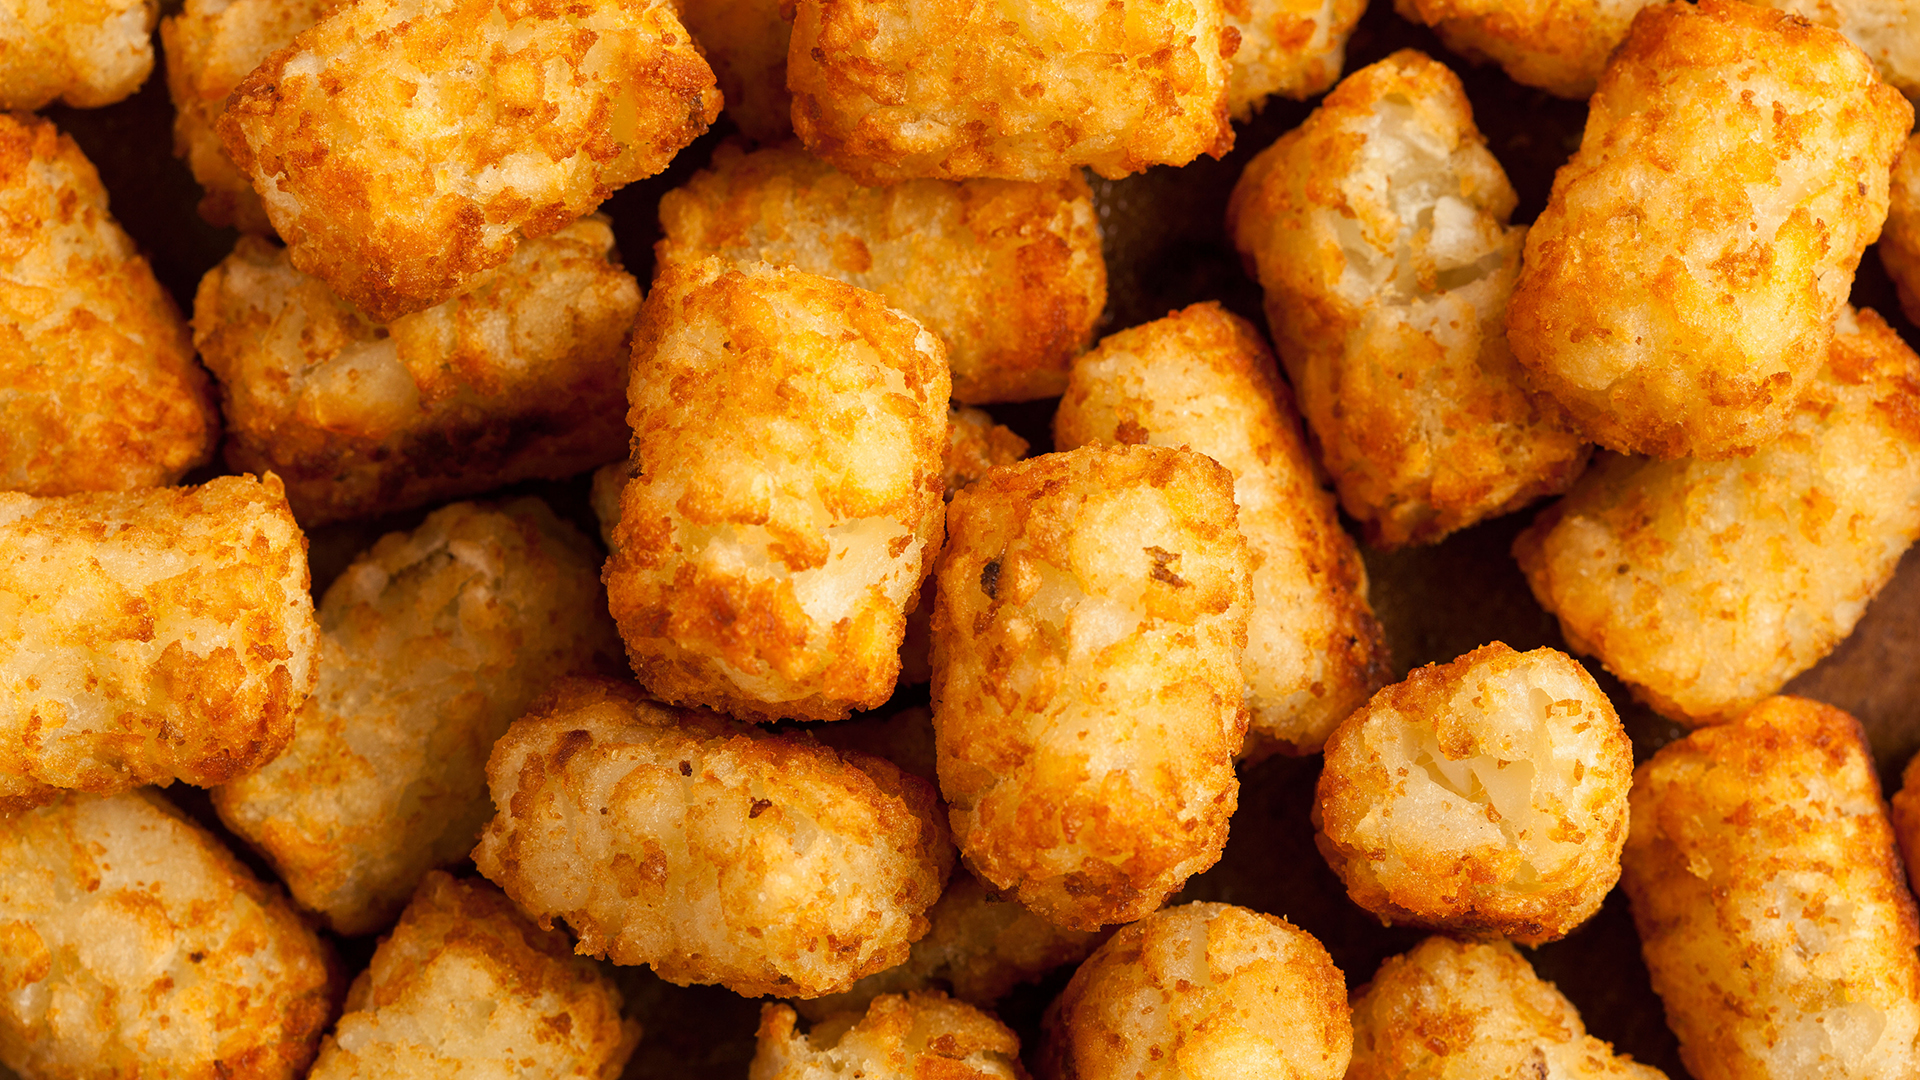 Sunny Anderson S Tater Tot Pie Today Com